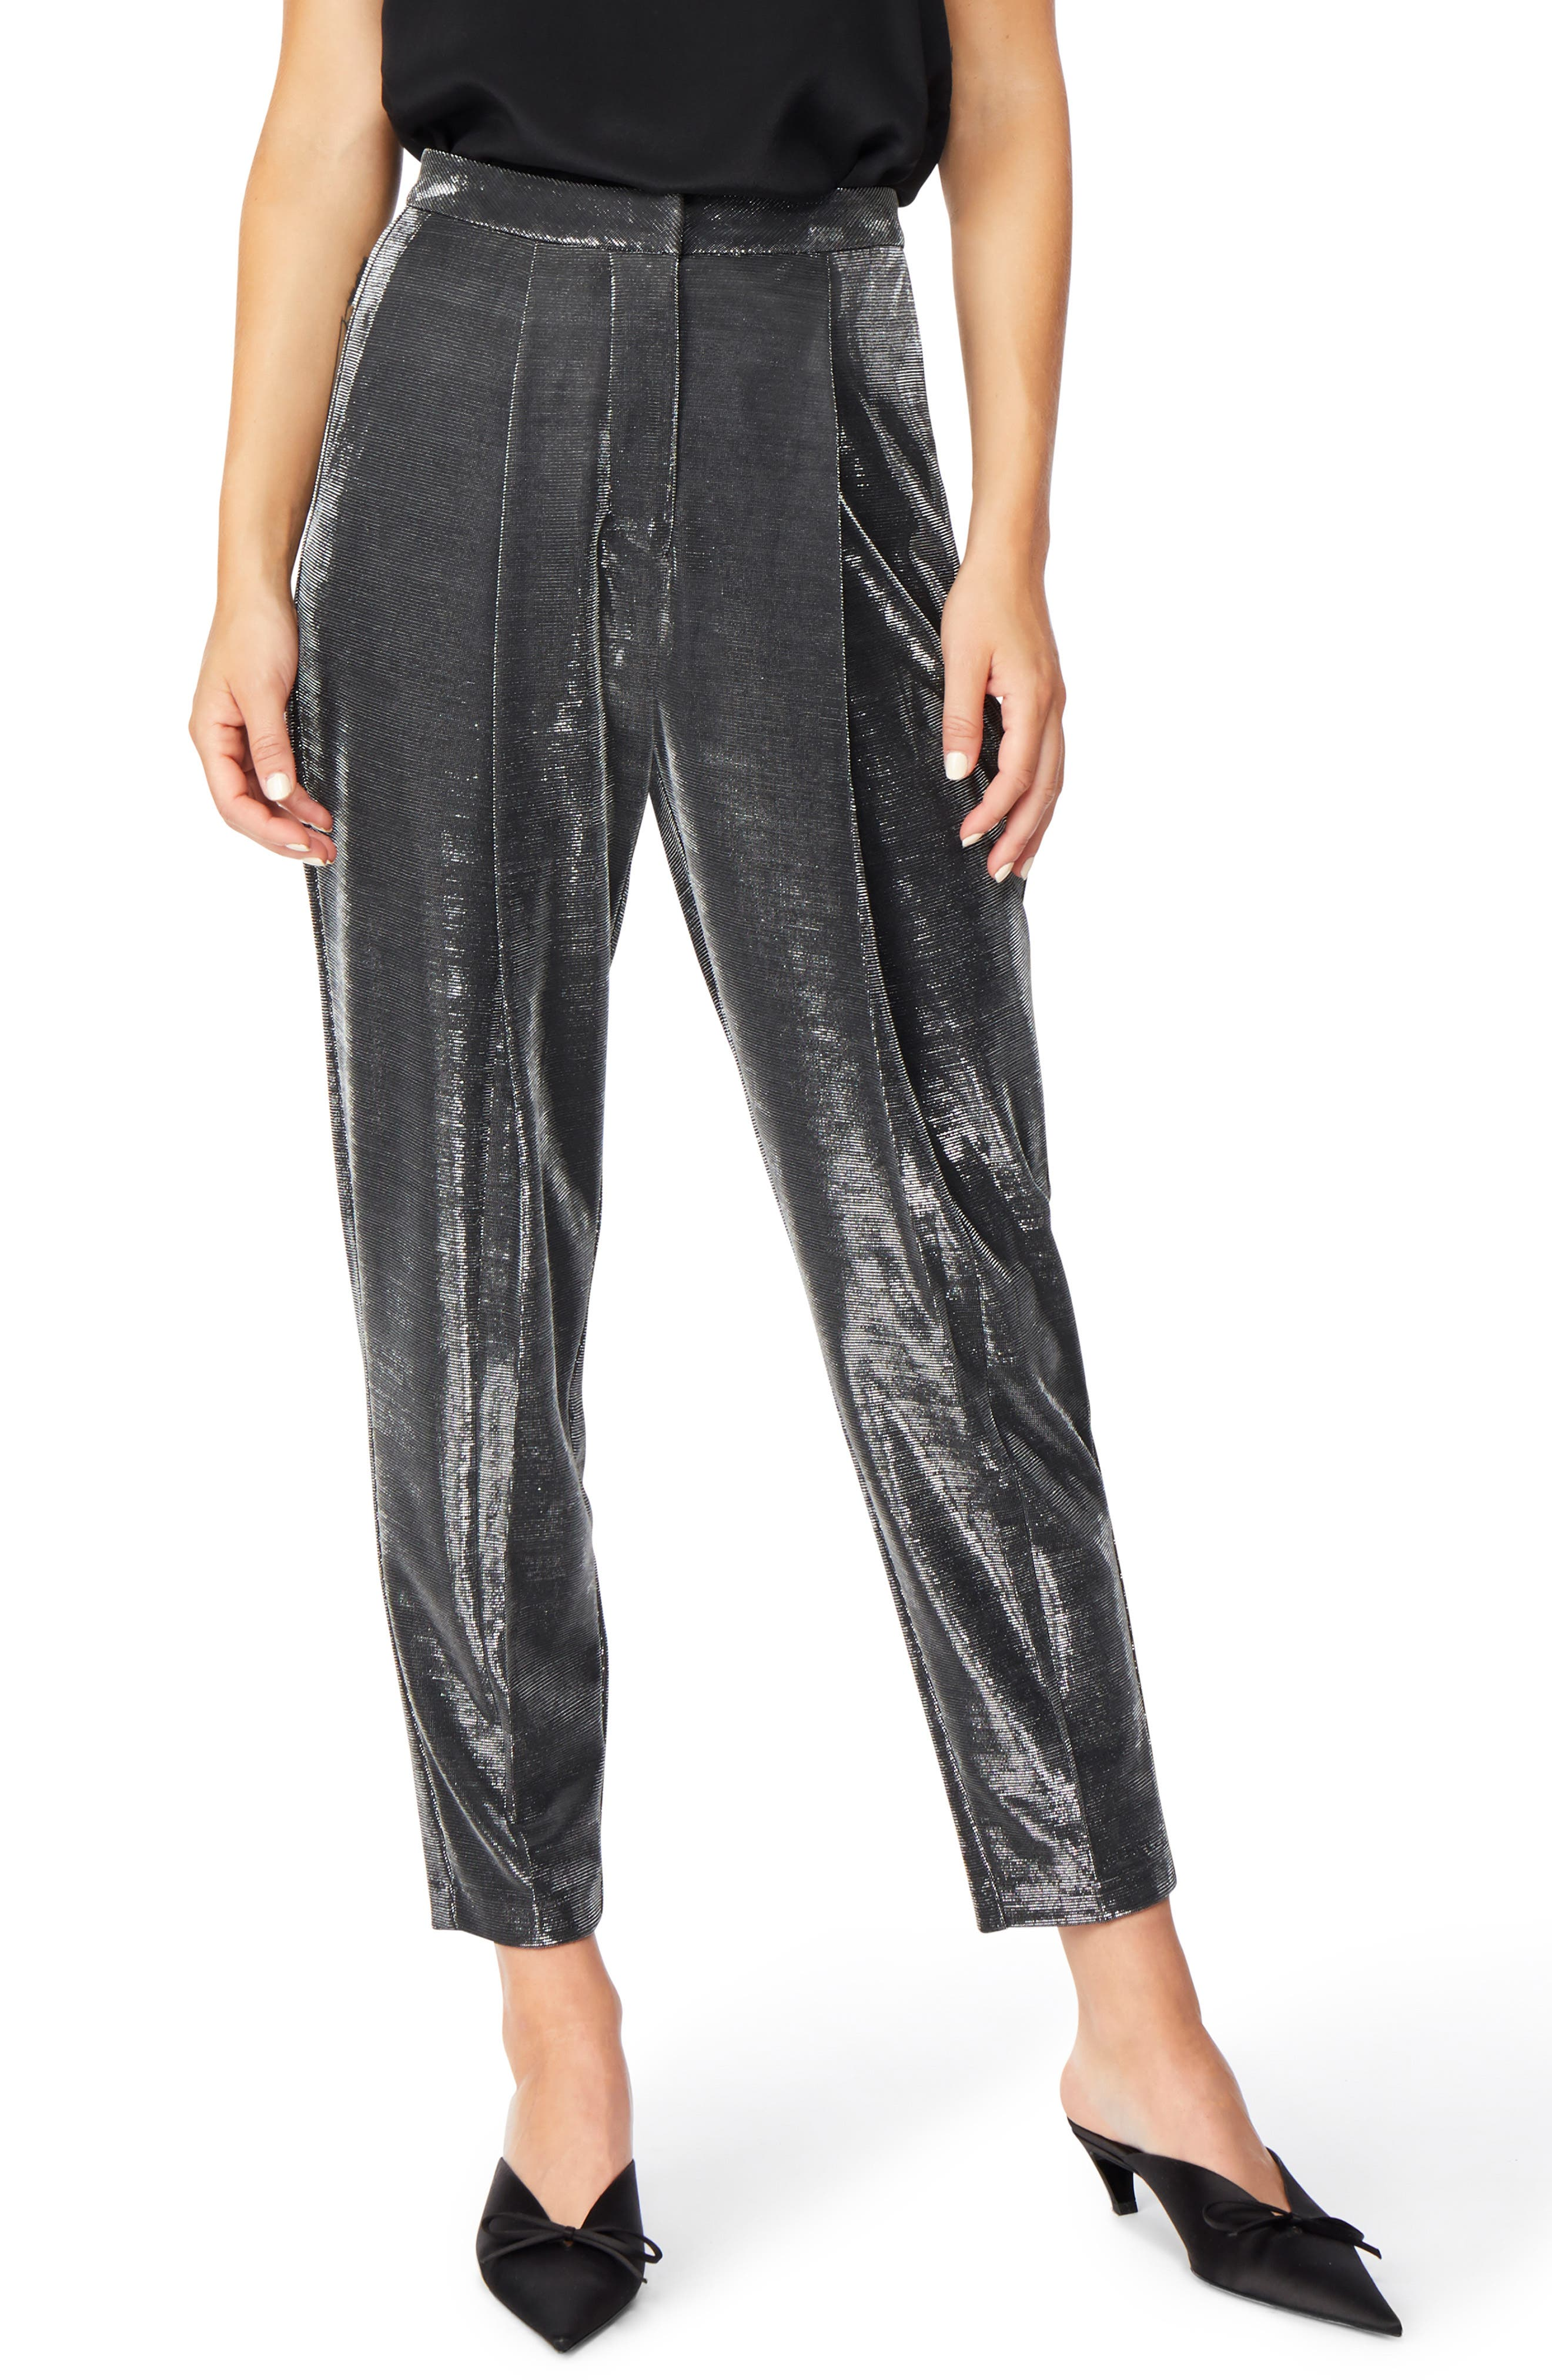 Shimmer Trousers,                         Main,                         color, JET BLACK WITH SILVER